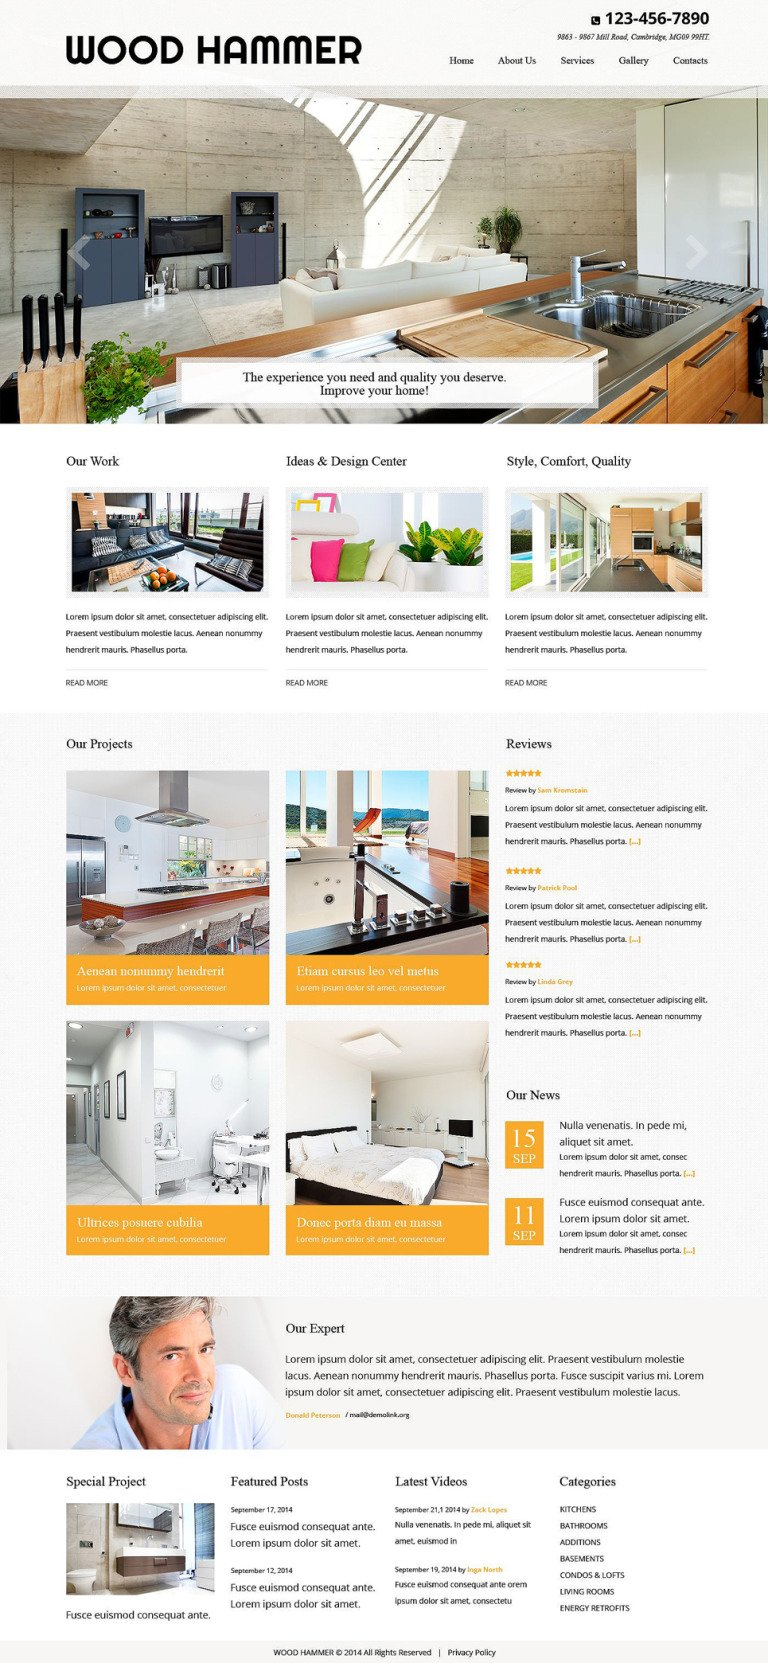 Residential Remodeling Website Template New Screenshots BIG